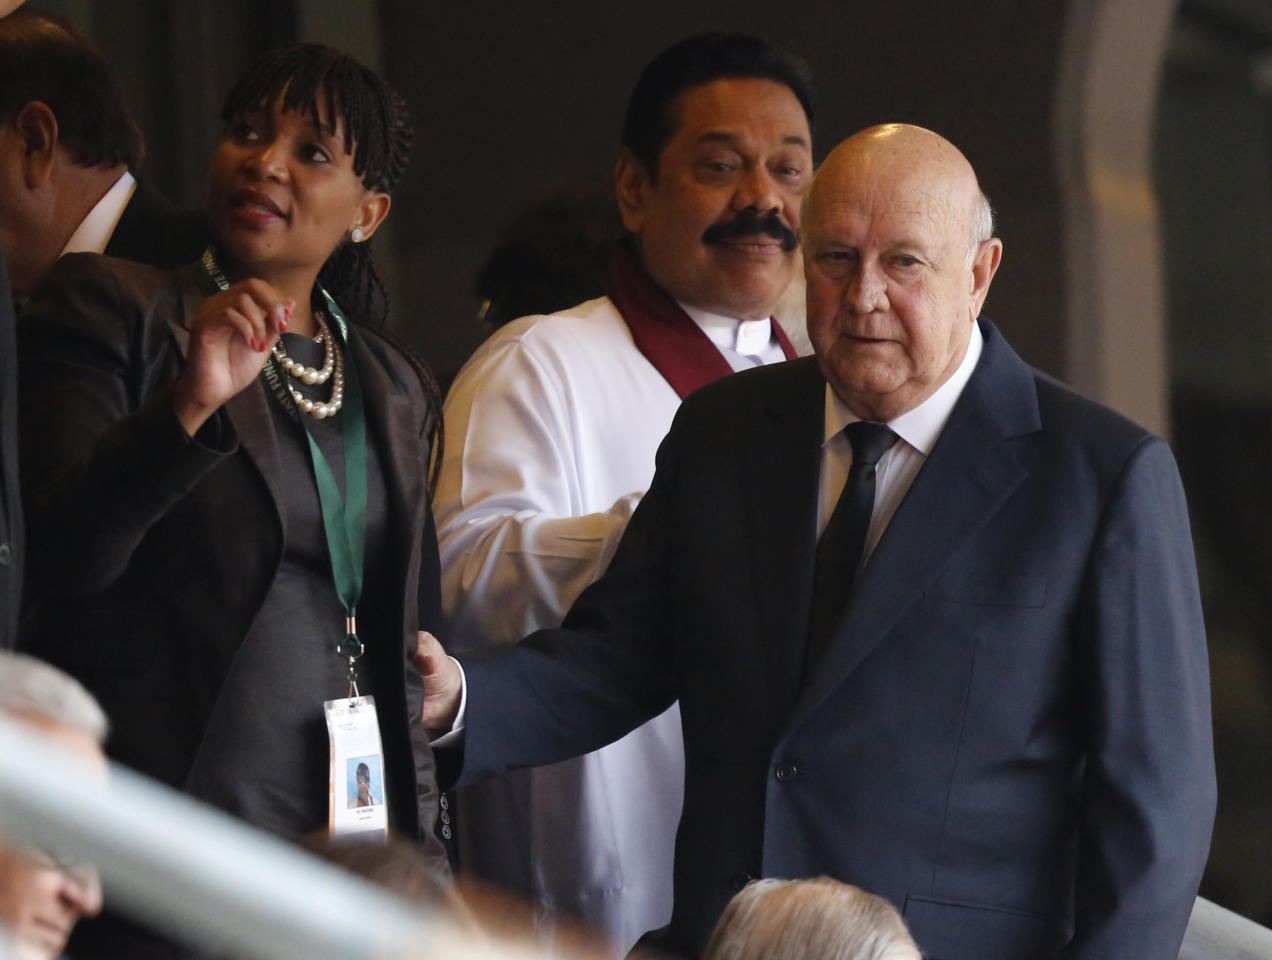 Former South African President F. W. De Klerk, right, arrives for the memorial service for former South African president Nelson Mandela at the FNB Stadium in Soweto near Johannesburg, Tuesday, Dec. 10, 2013. (AP Photo/Ben Curtis)